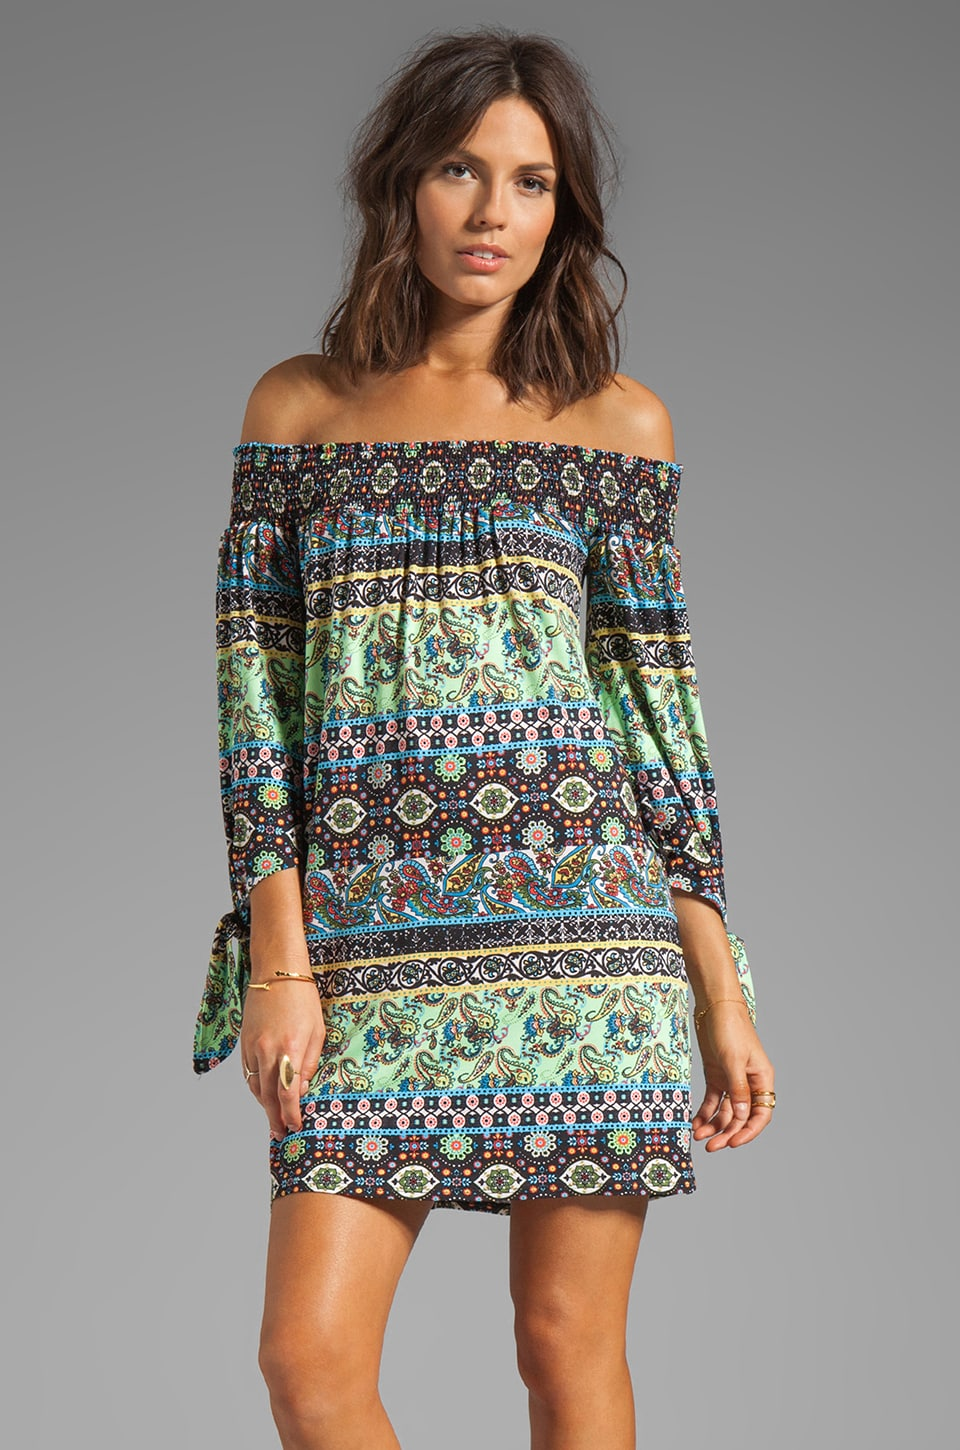 VOOM by Joy Han Eliza Off the Shoulder Dress in Multi